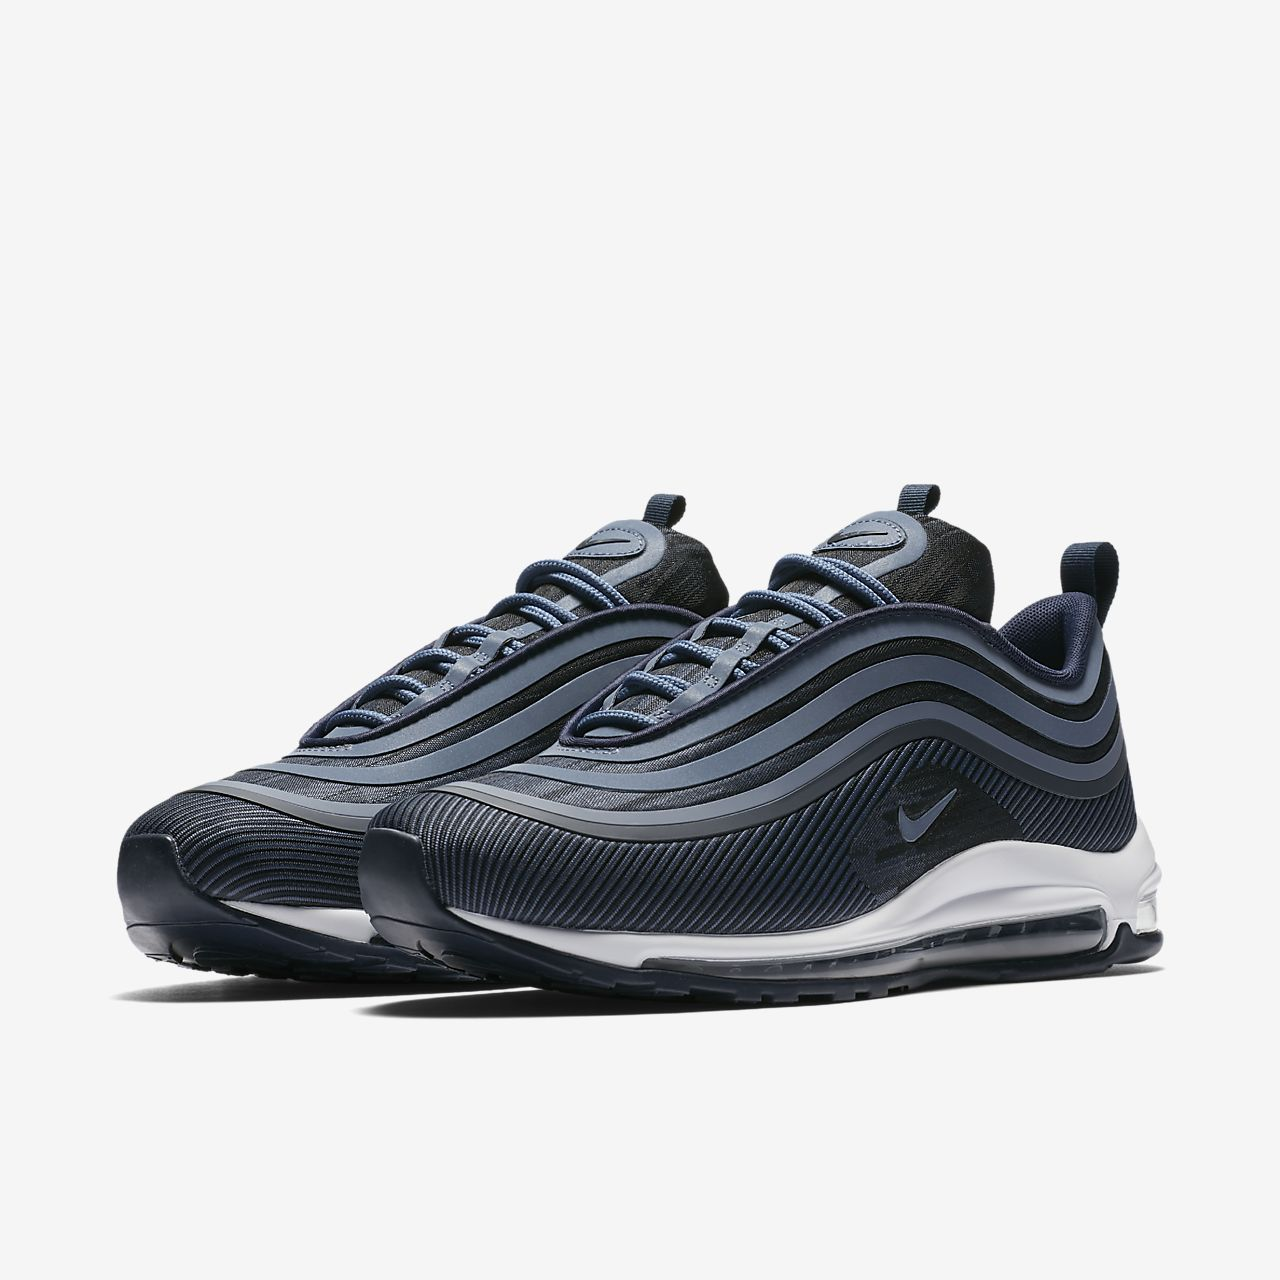 nike air max 97 ultra 17 bianche